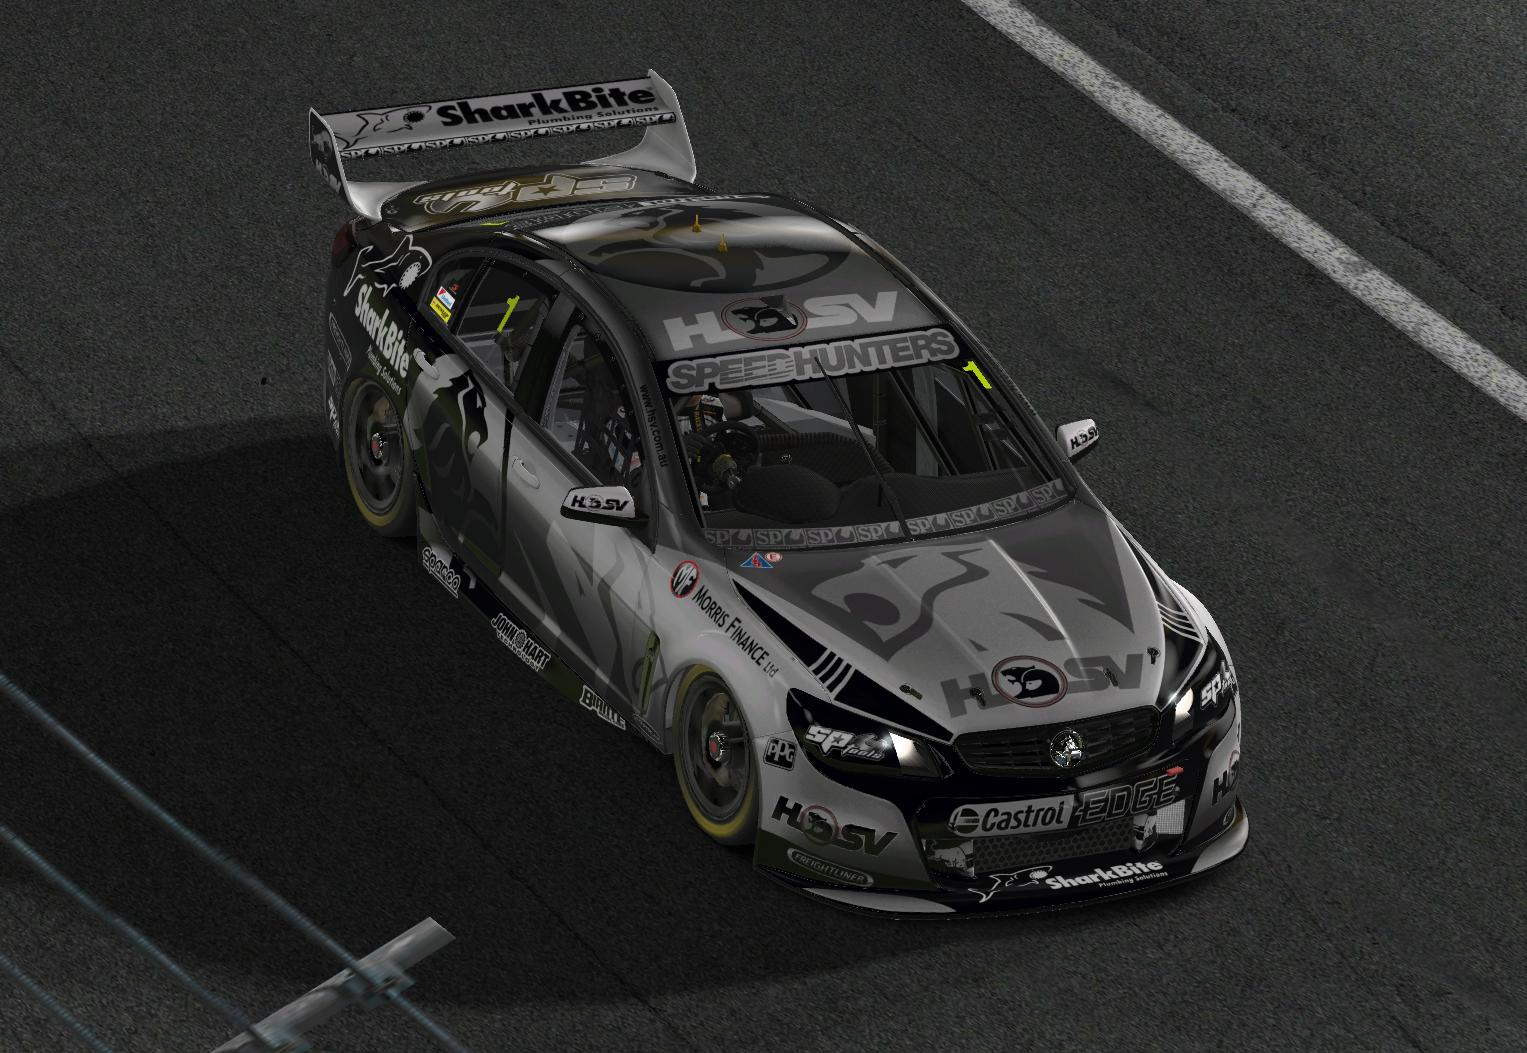 Preview of 2017 HSV Tribute by Steven Latimore